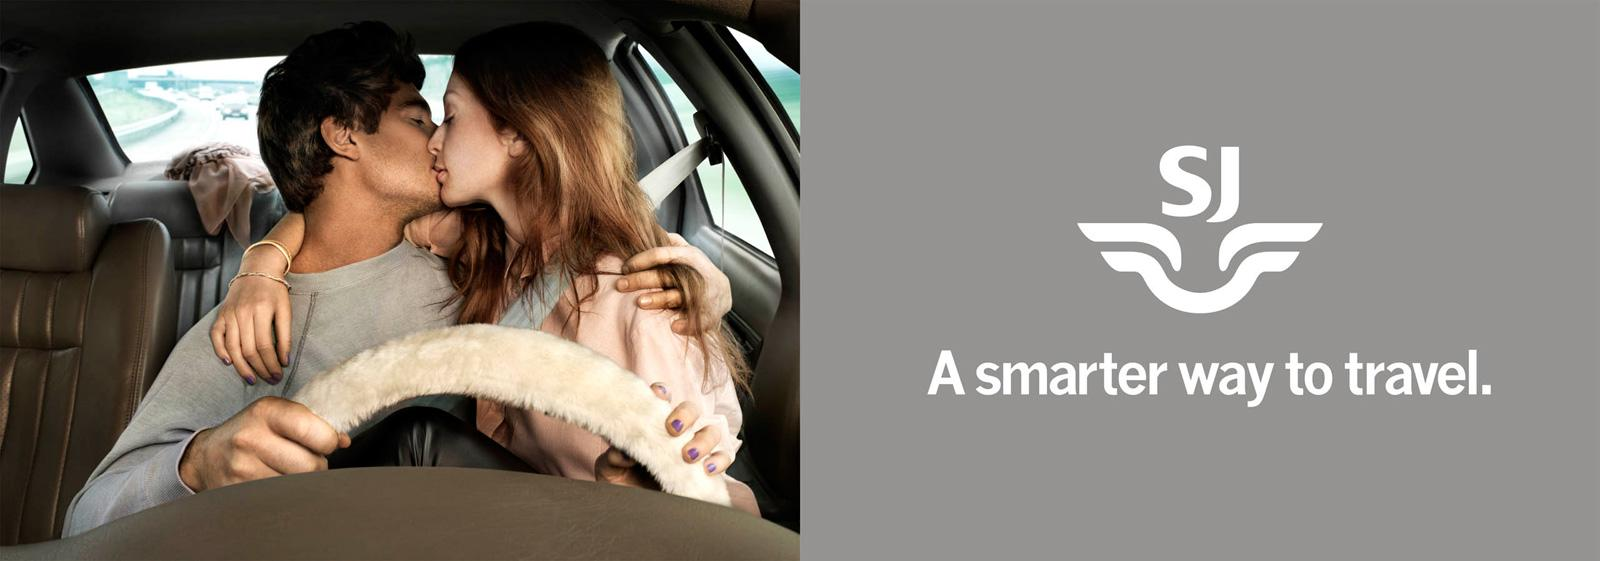 SJ Outdoor Ad -  A Smarter Way to Travel, Kissing